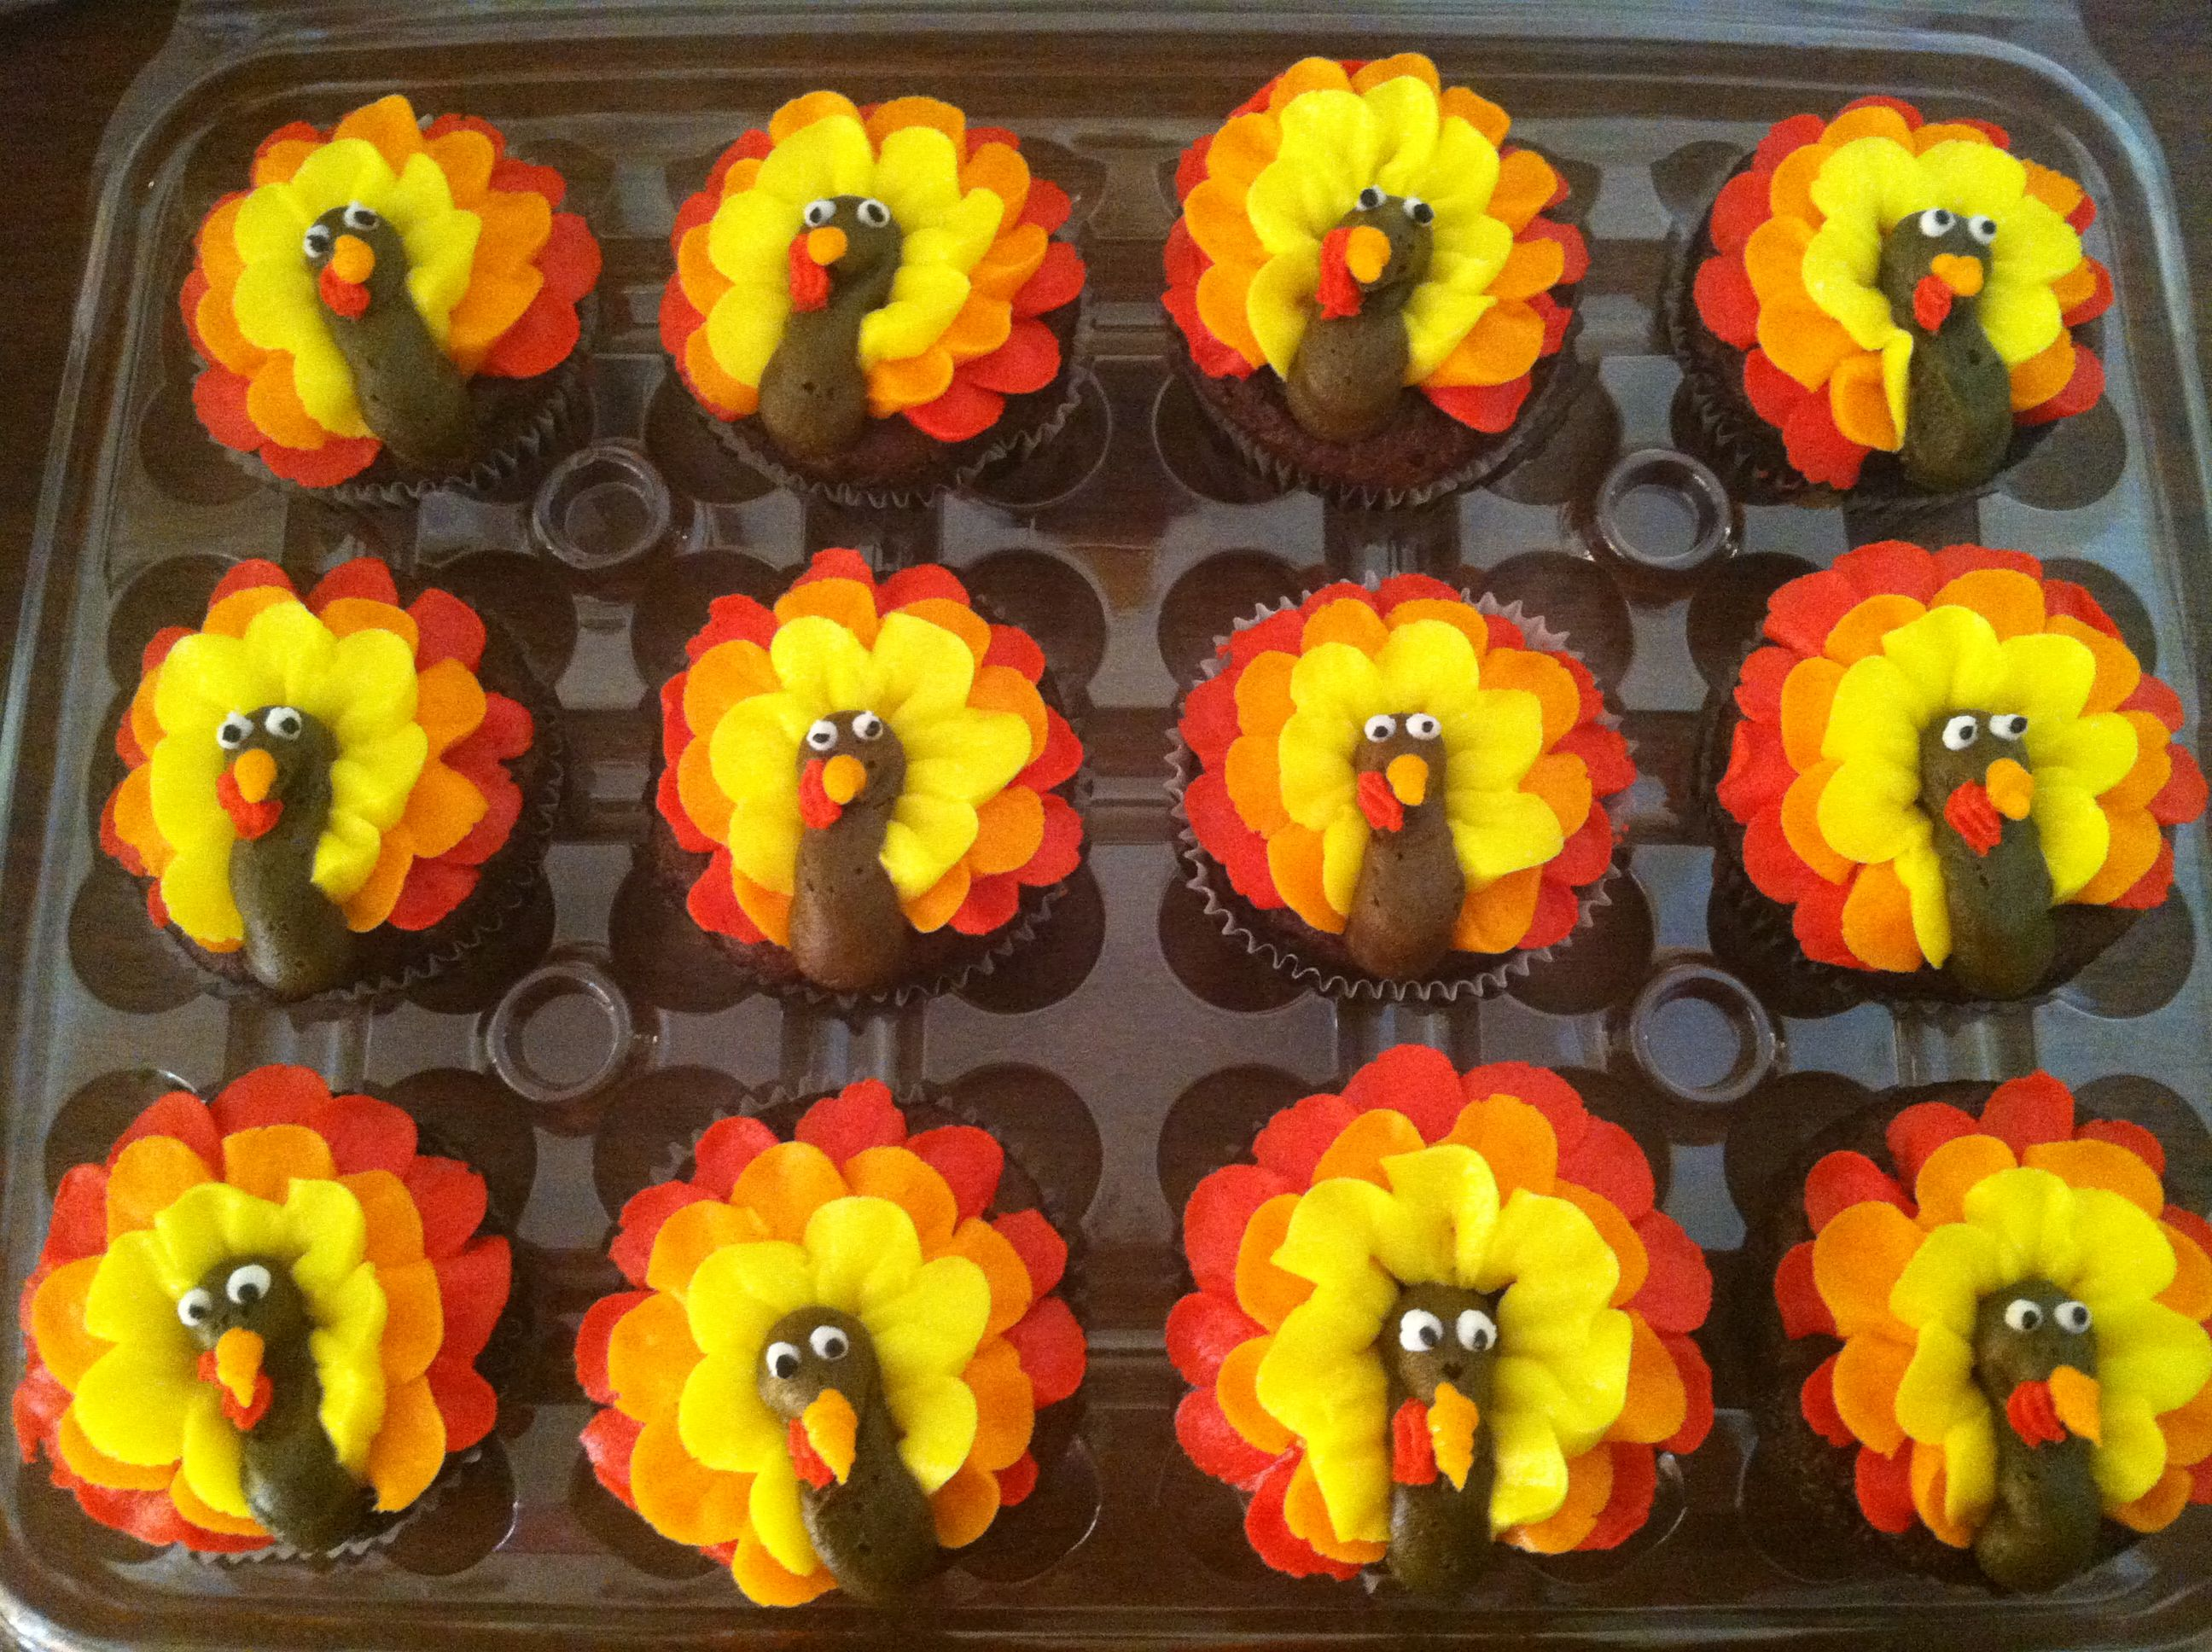 Cupcake Decorating Ideas For Thanksgiving : Turkey Cupcakes Cake & Cupcake Ideas (decorating ...